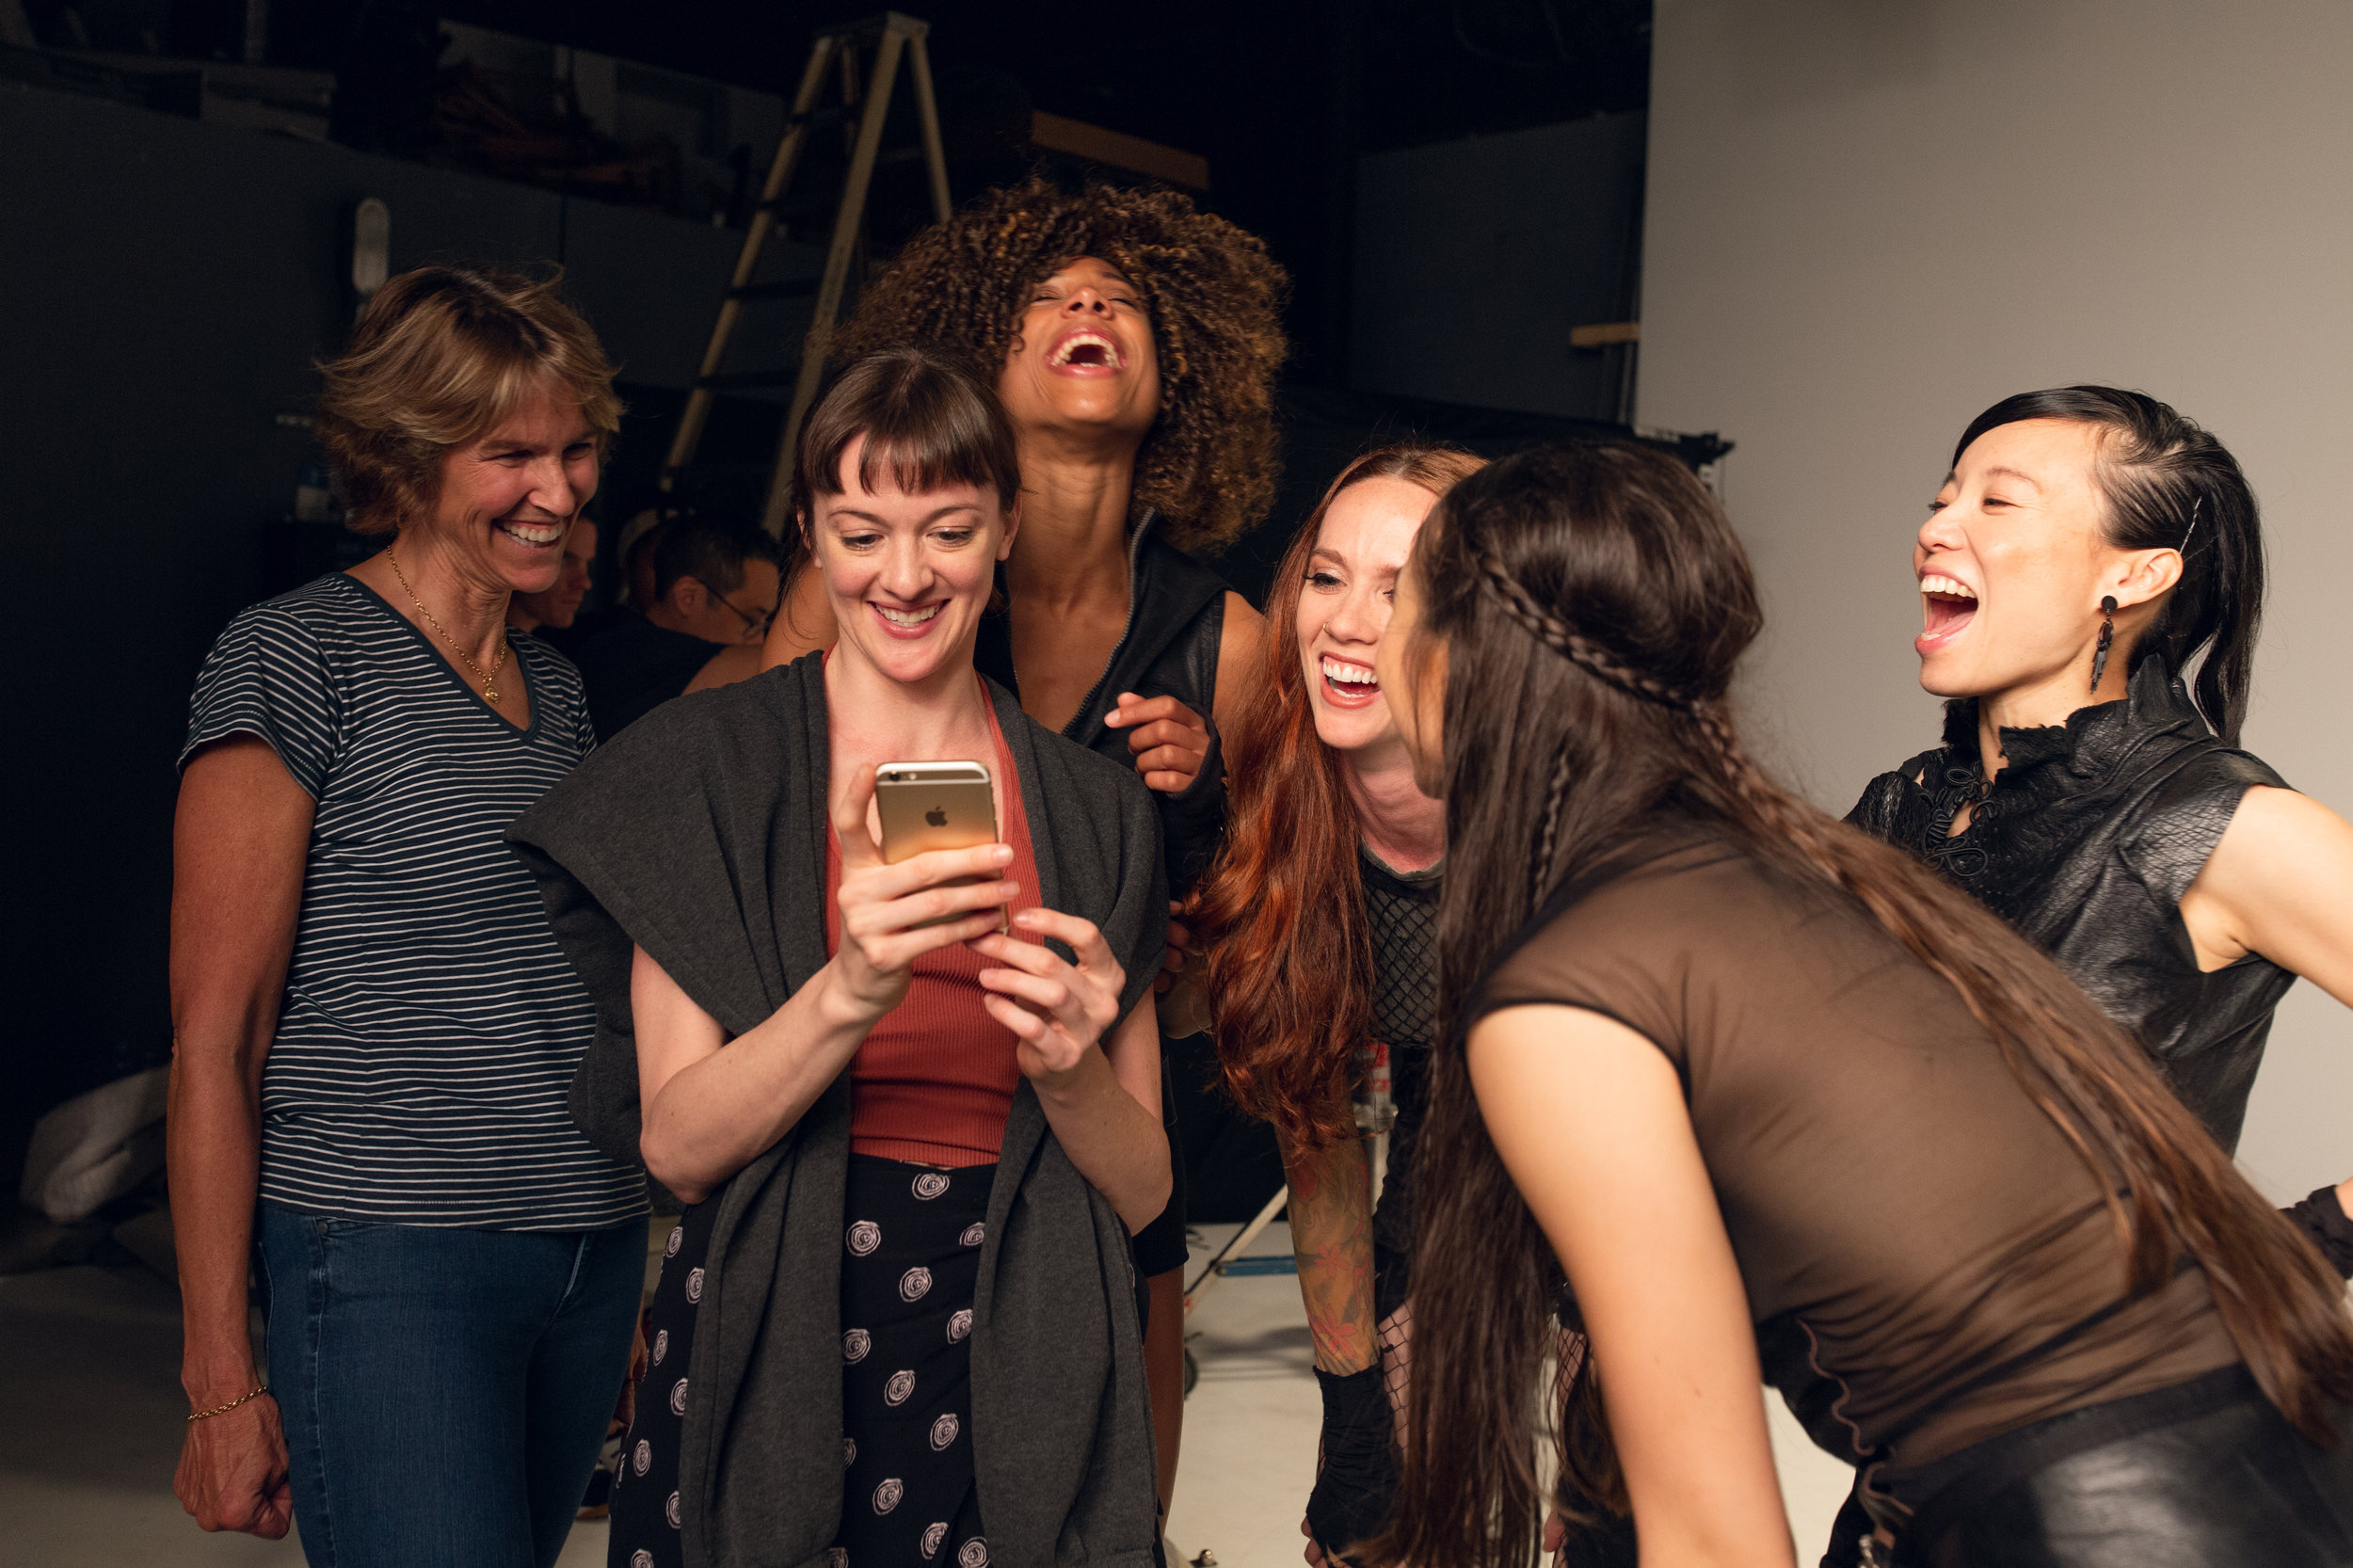 From left to right, your faithful music video director-Kate, choreographer Laura O'Malley and dancers Adji Cissoko, Maddie DeVries, Kat Eng (back to photo) and Frances Chung, 22 weeks pregnant! It was a blast.